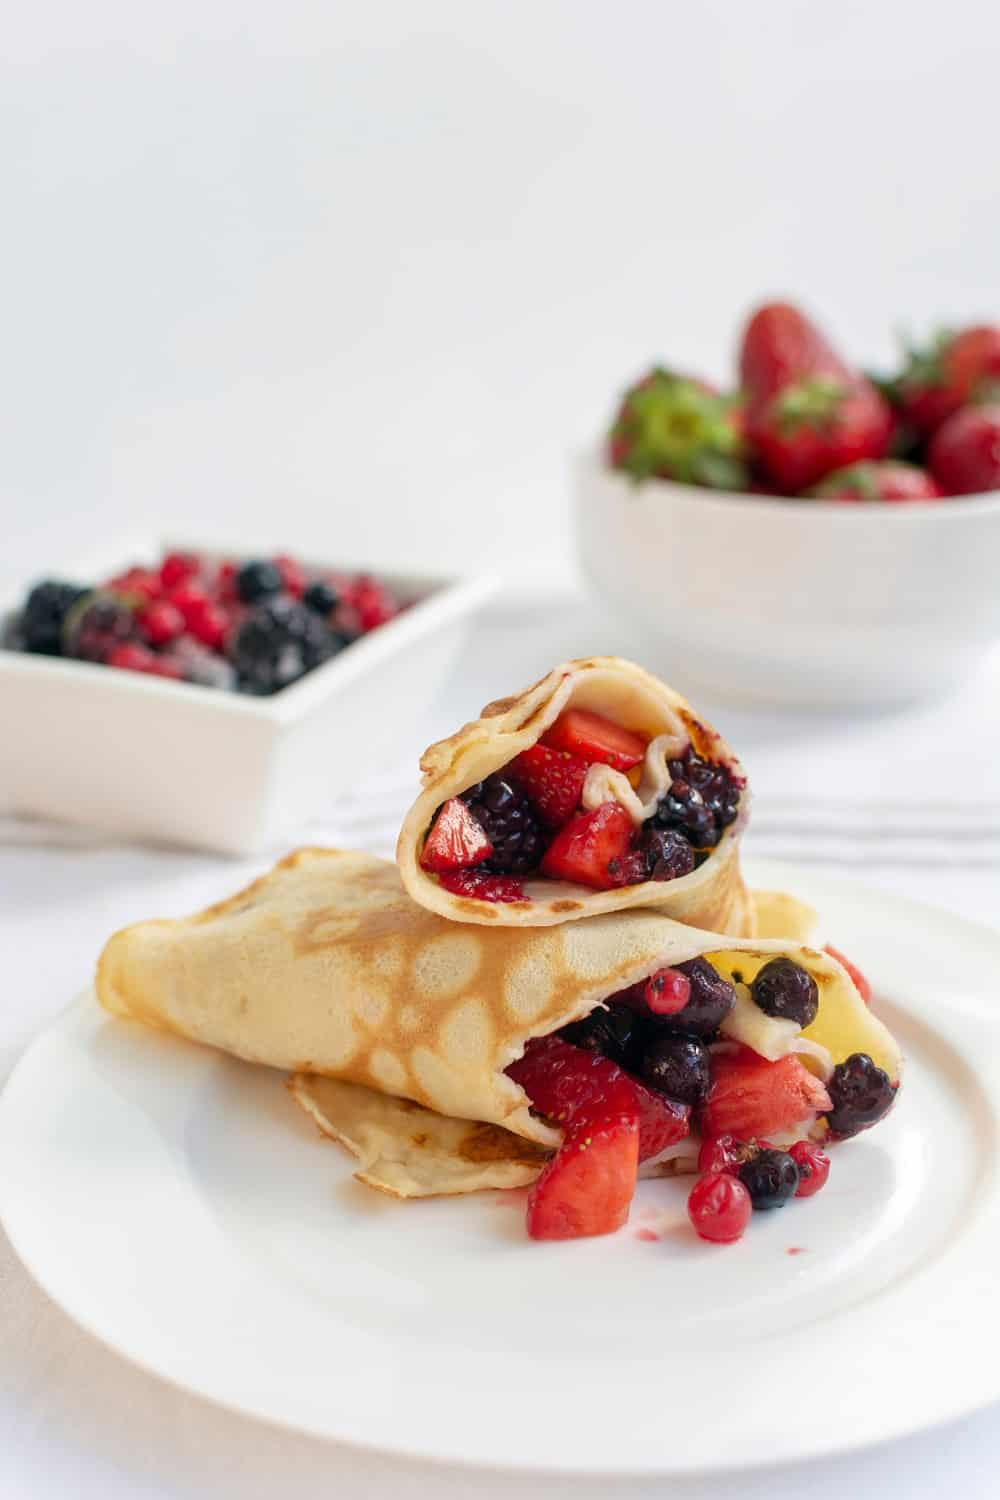 Crepe with delicious Filling